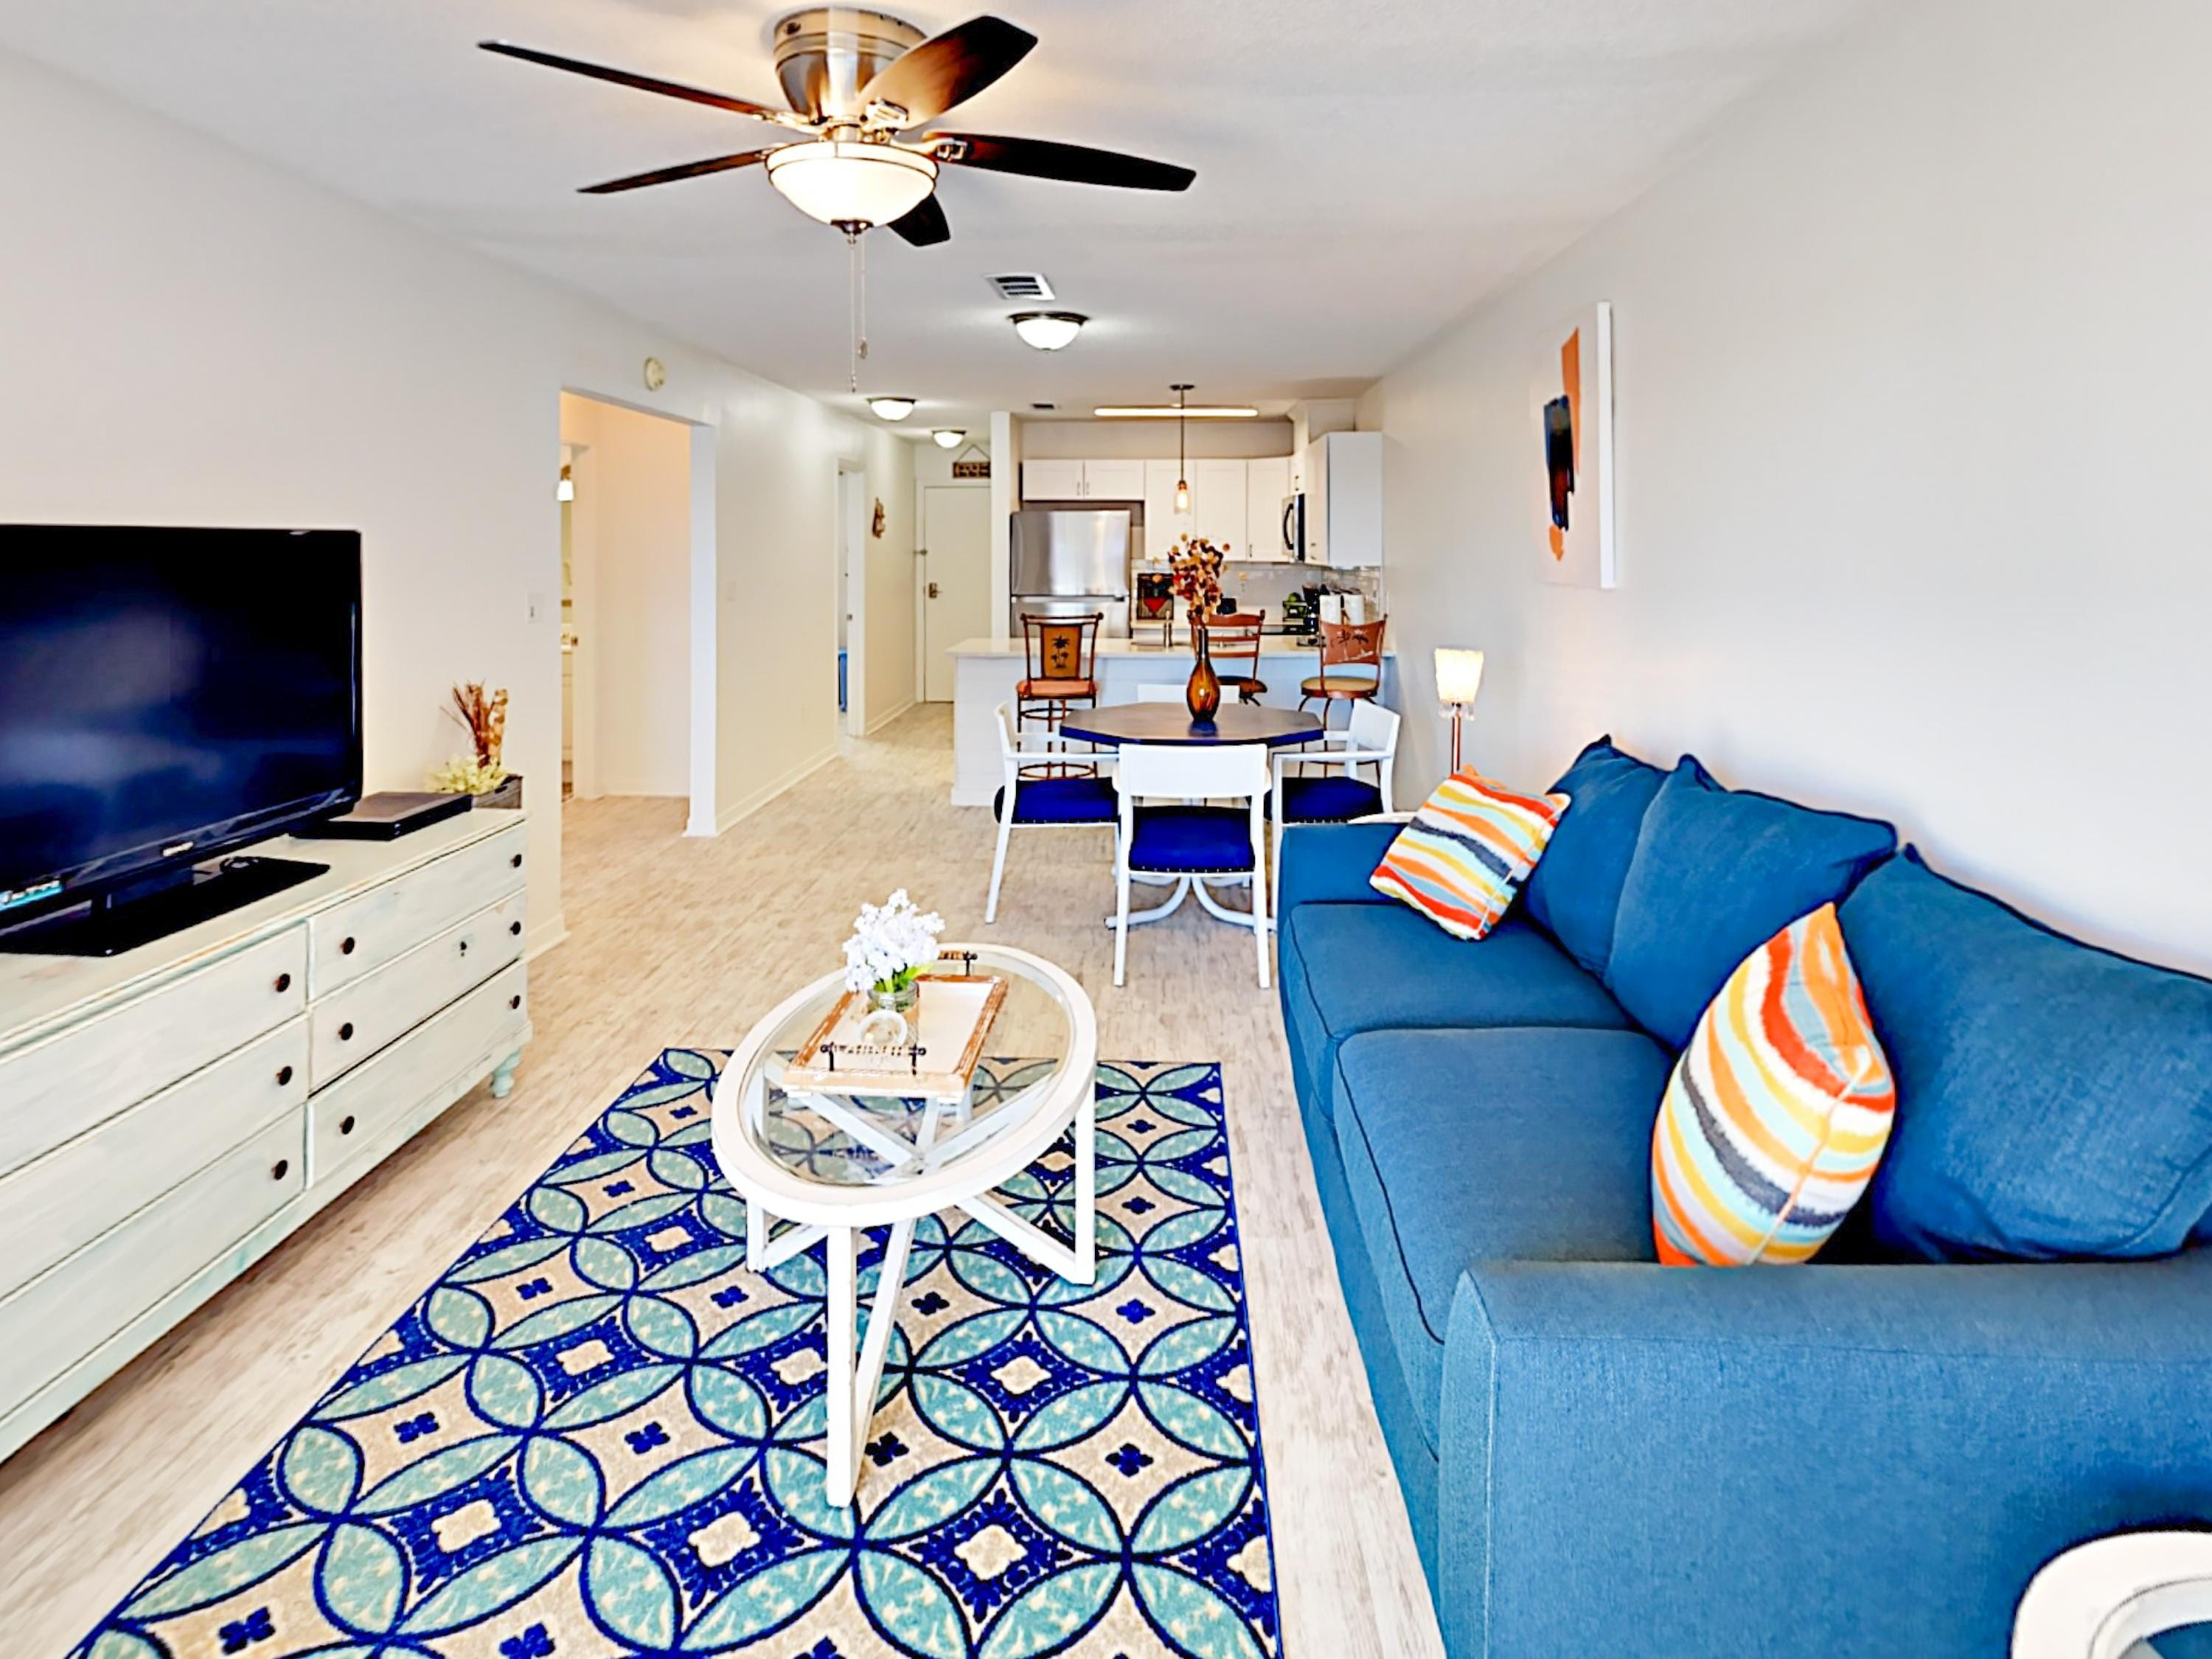 Welcome to Orange Beach! Your beachside condo is professionally managed by TurnKey Vacation Rentals.